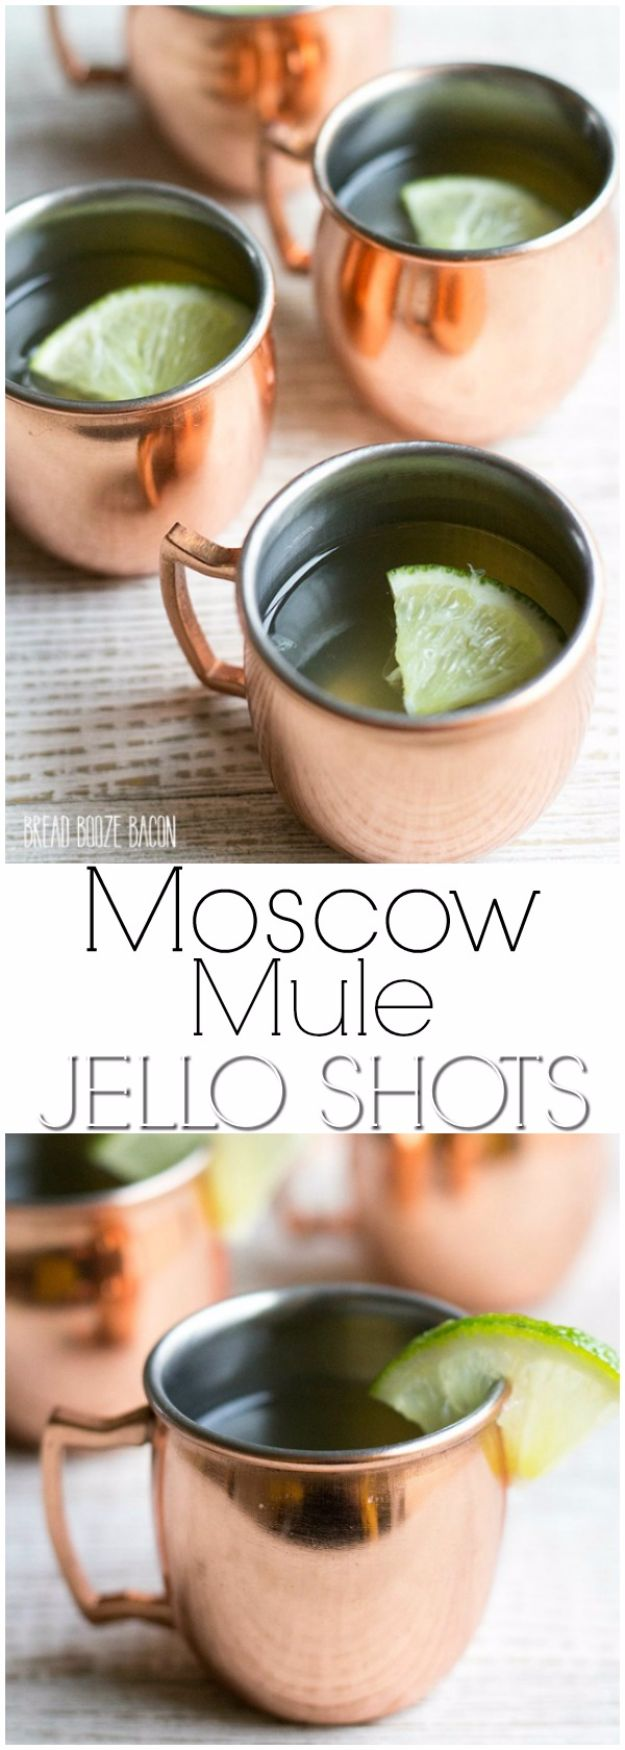 Best Jello Shot Recipes - Moscow Mule Jello Shots - Easy Jello Shots Recipe Ideas with Vodka, Strawberry, Tequila, Rum, Jolly Rancher and Creative Alcohol - Unique and Fun Drinks for Parties like Whiskey Fireball, Fall Halloween Versions, Malibu, 4th of July, Birthday, Summer, Christmas and Birthdays #jelloshots #partydrinks #drinkrecipes